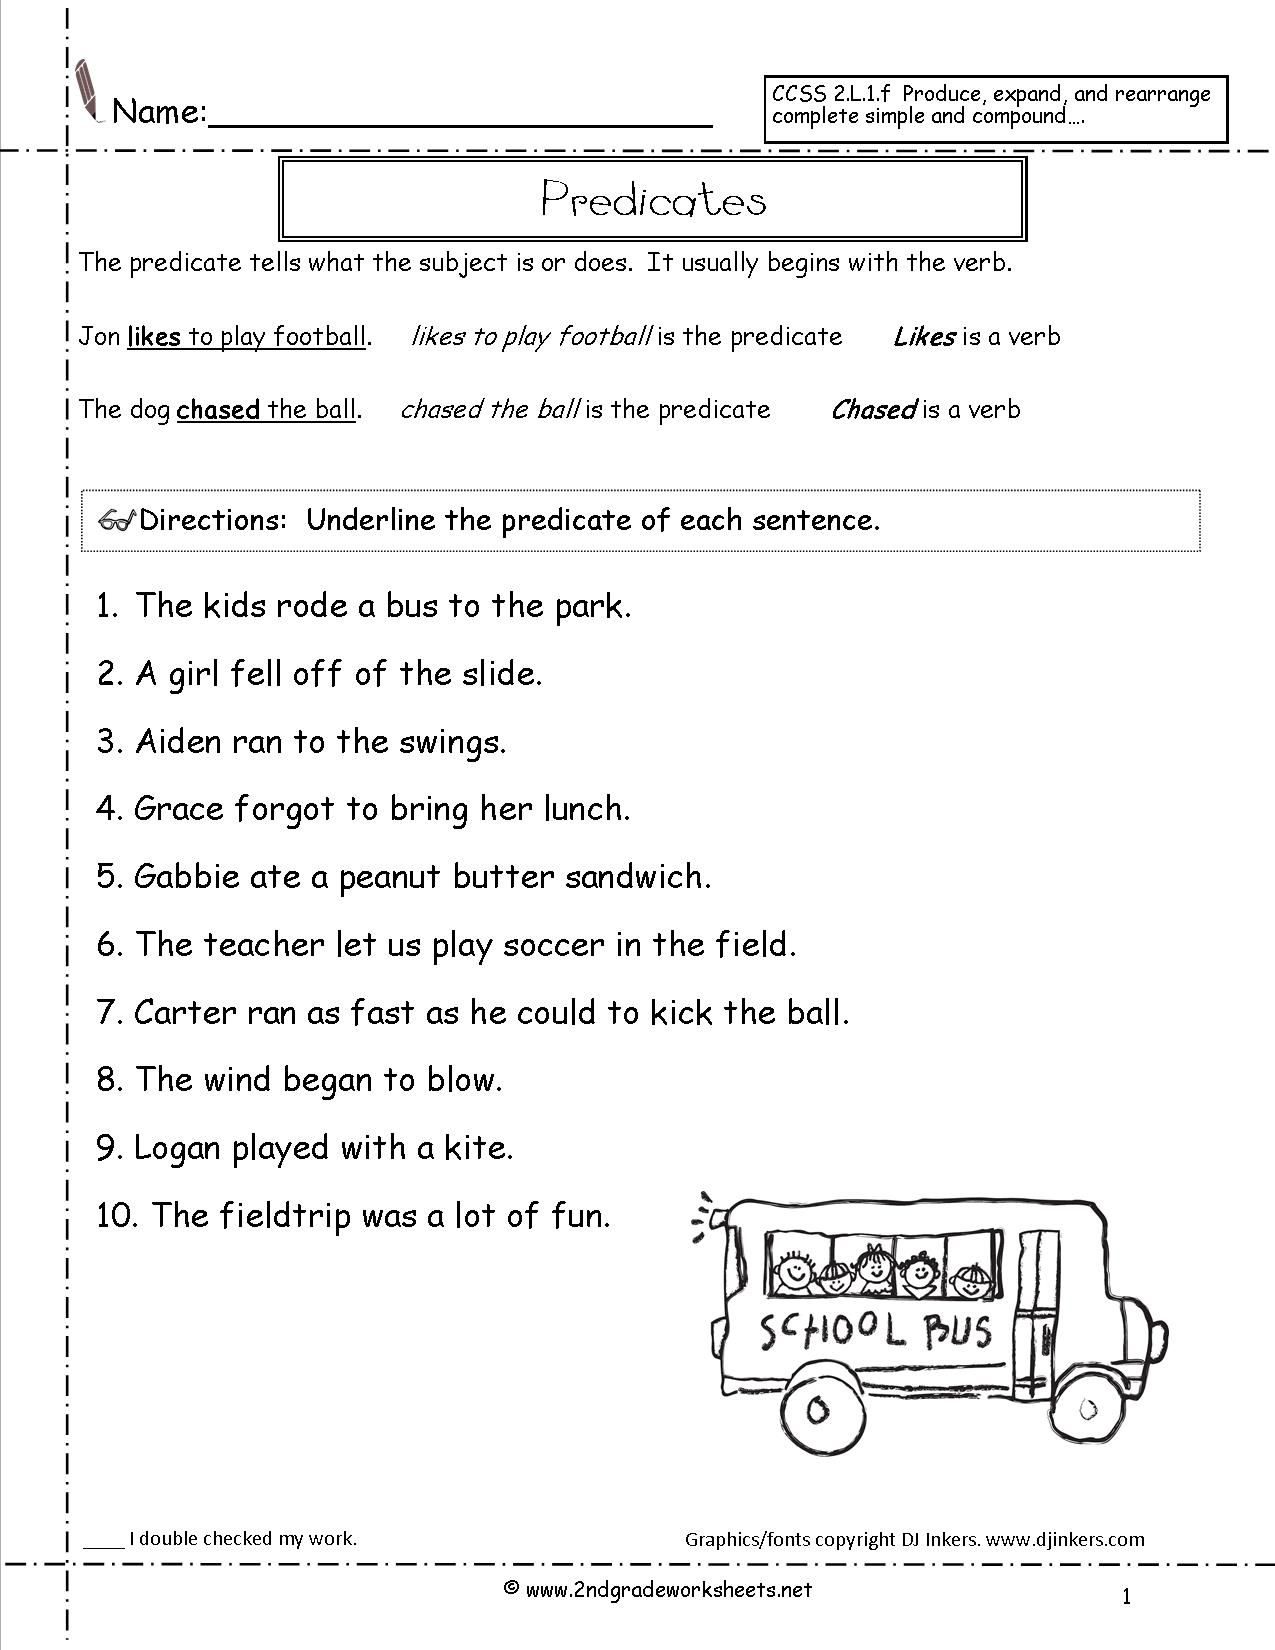 small resolution of 4th Grade Simple Predicate Worksheet   Printable Worksheets and Activities  for Teachers